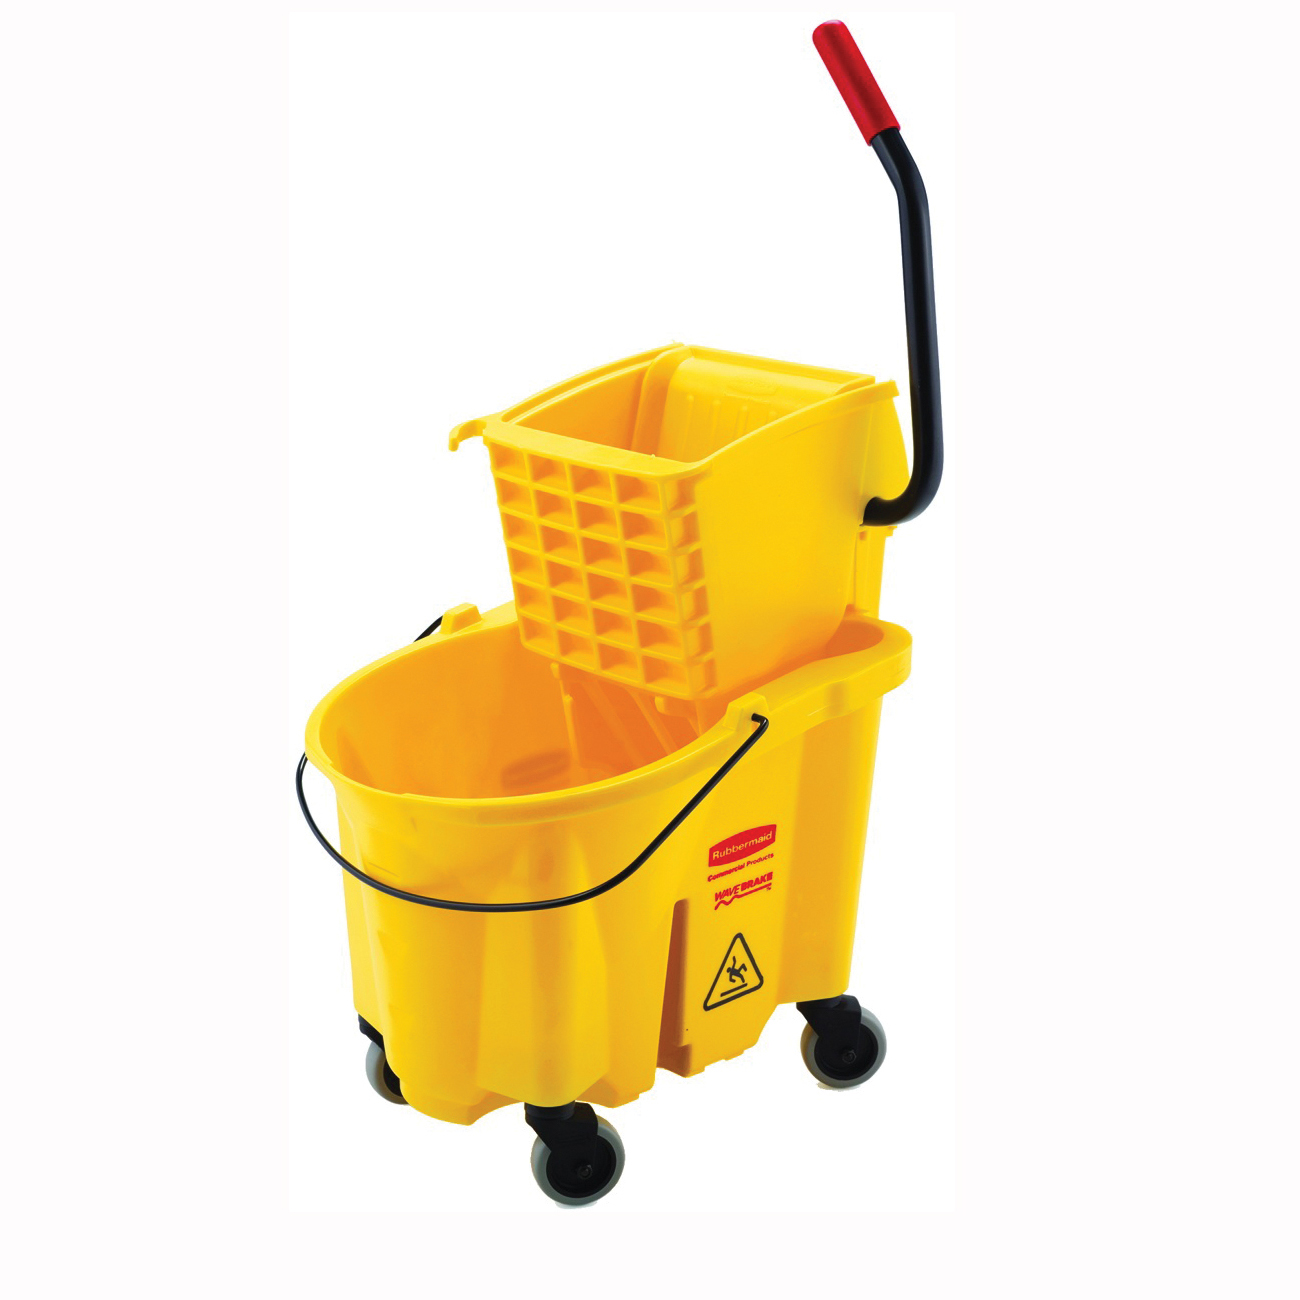 Picture of Rubbermaid FG748000YEL Mop Bucket and Wringer Combo, 26 qt Capacity, Plastic Bucket/Pail